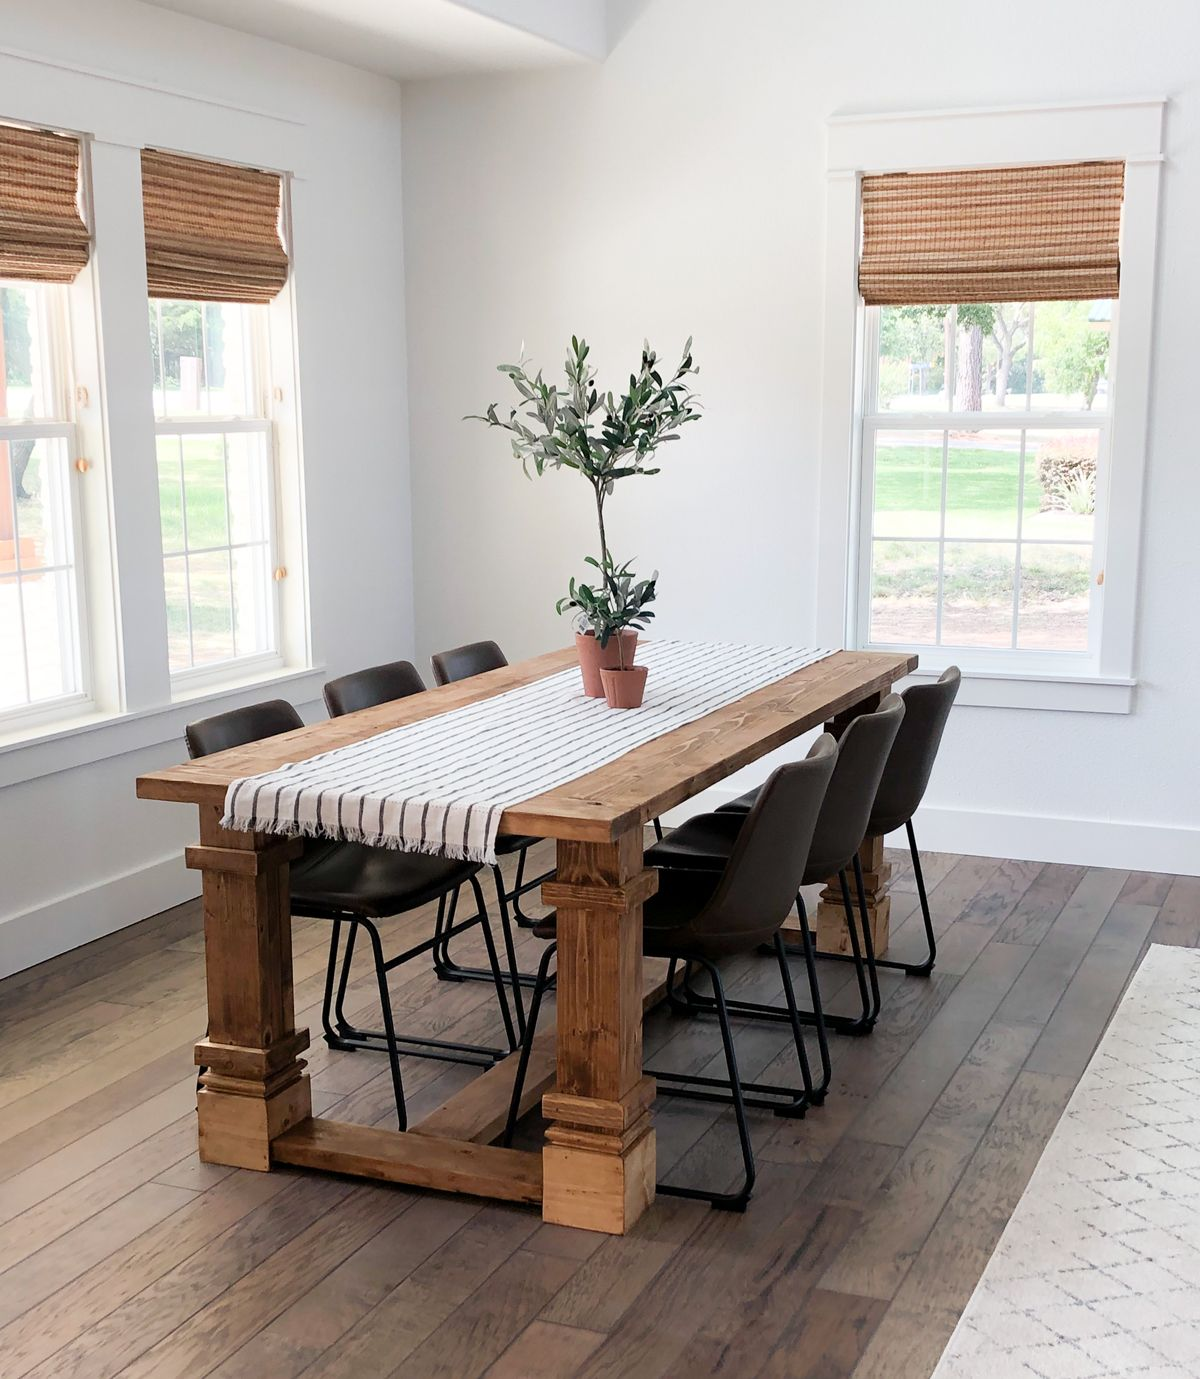 DIY Modern Farmhouse Dining Table for under $120 in lumber!